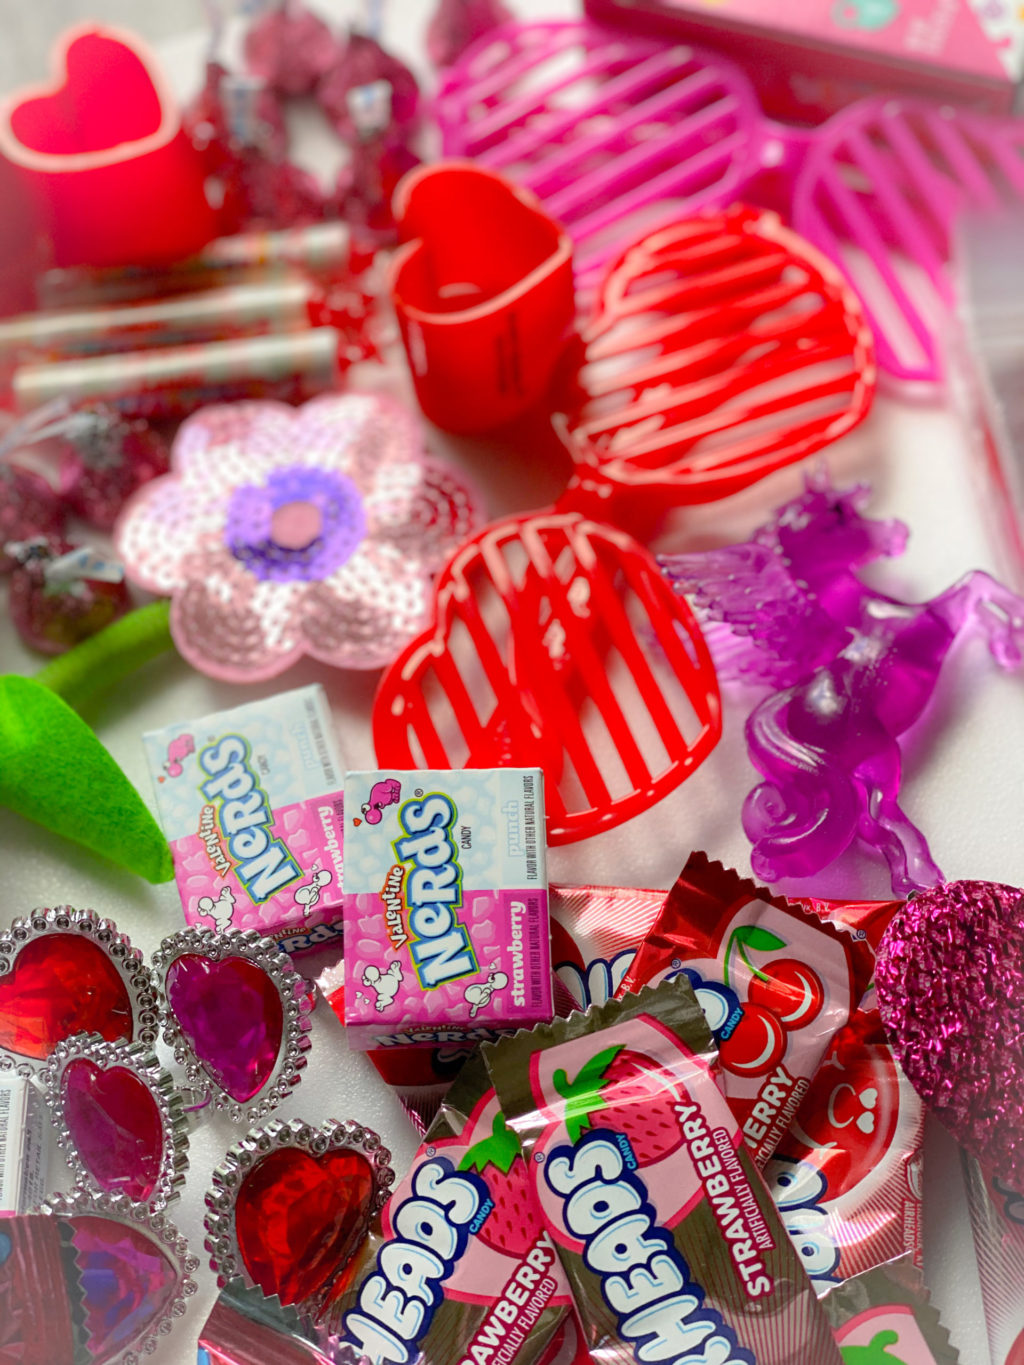 dollar tree valentine's day treats like heart sunglasses, heart rings and pink and red candy